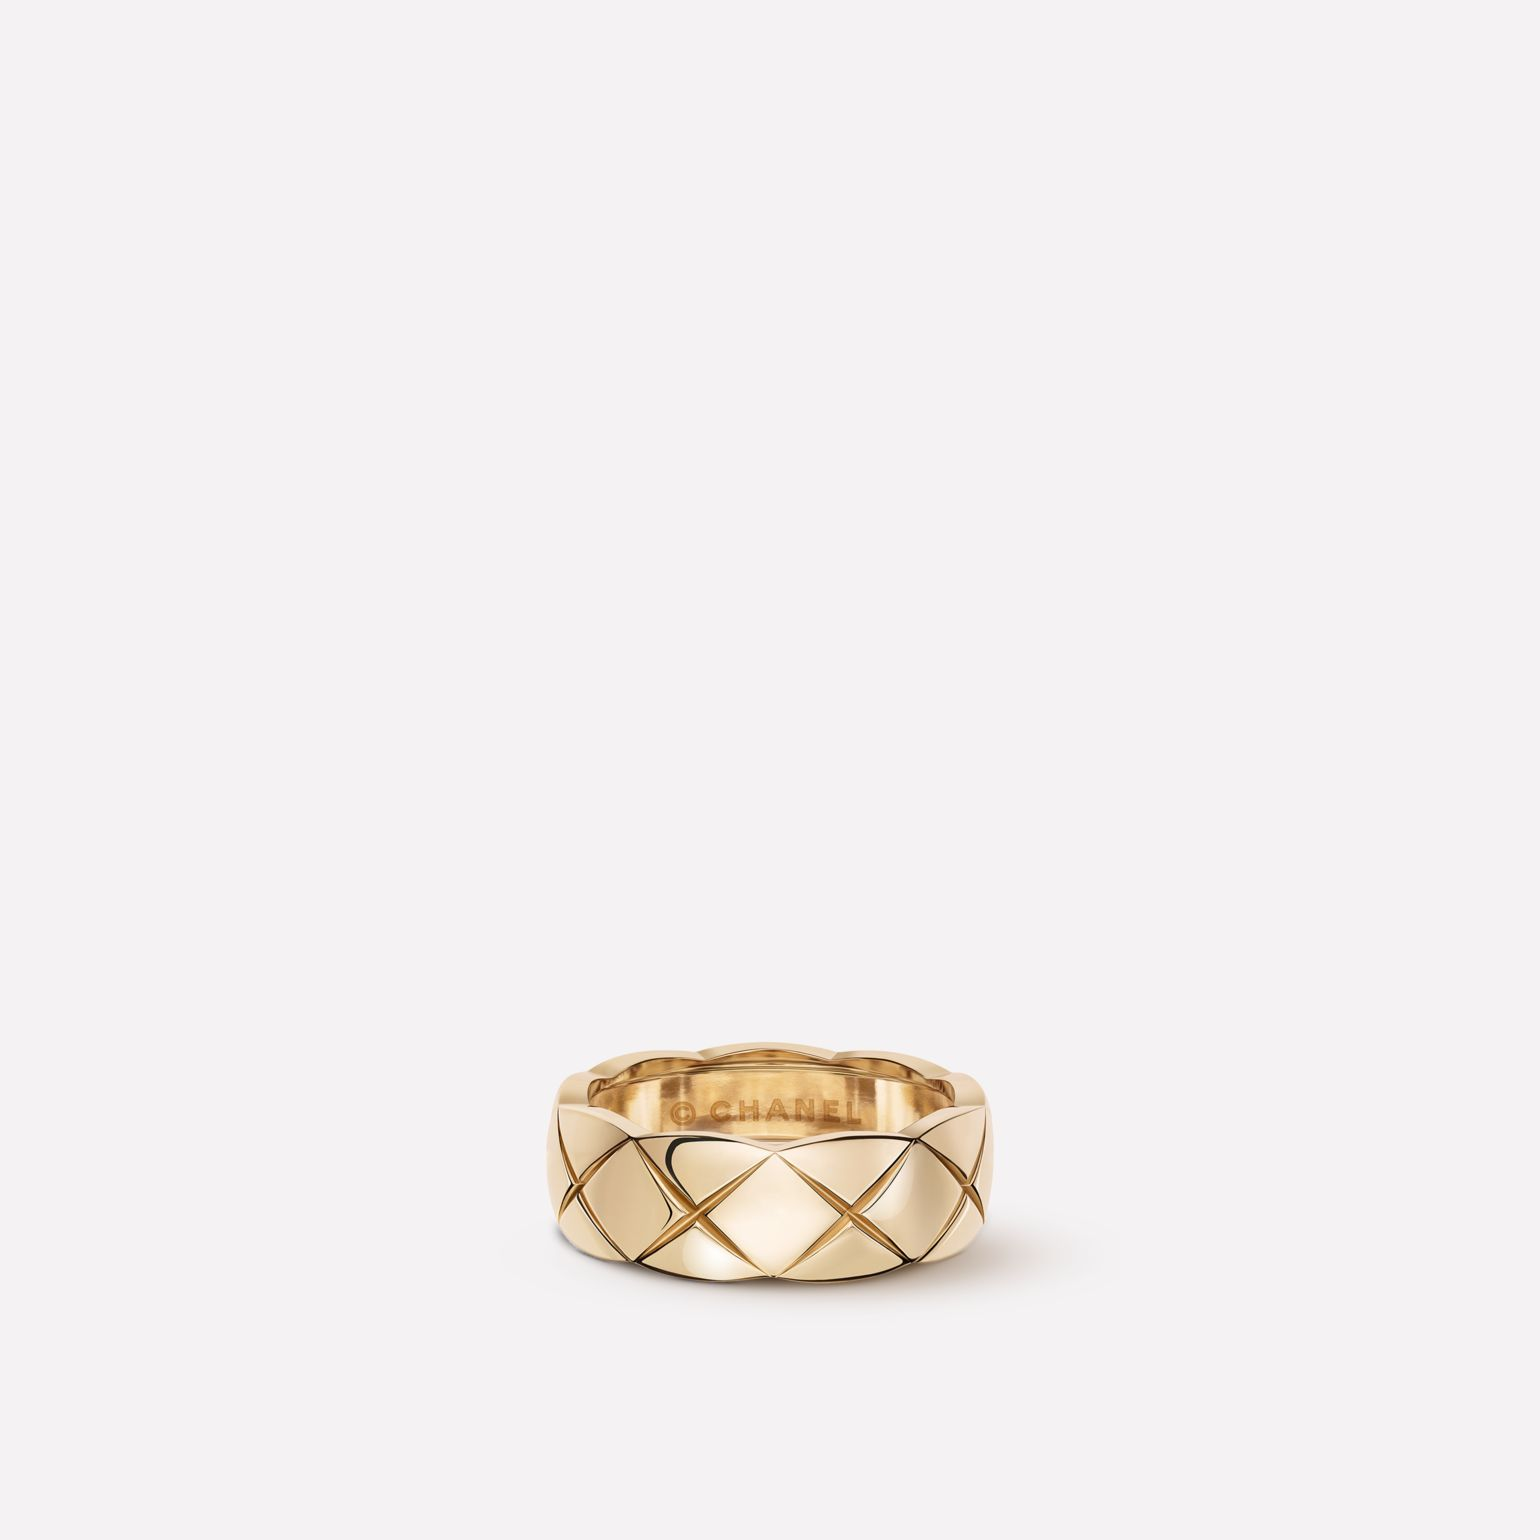 Coco Crush ring Quilted motif ring, small version, in 18K BEIGE GOLD